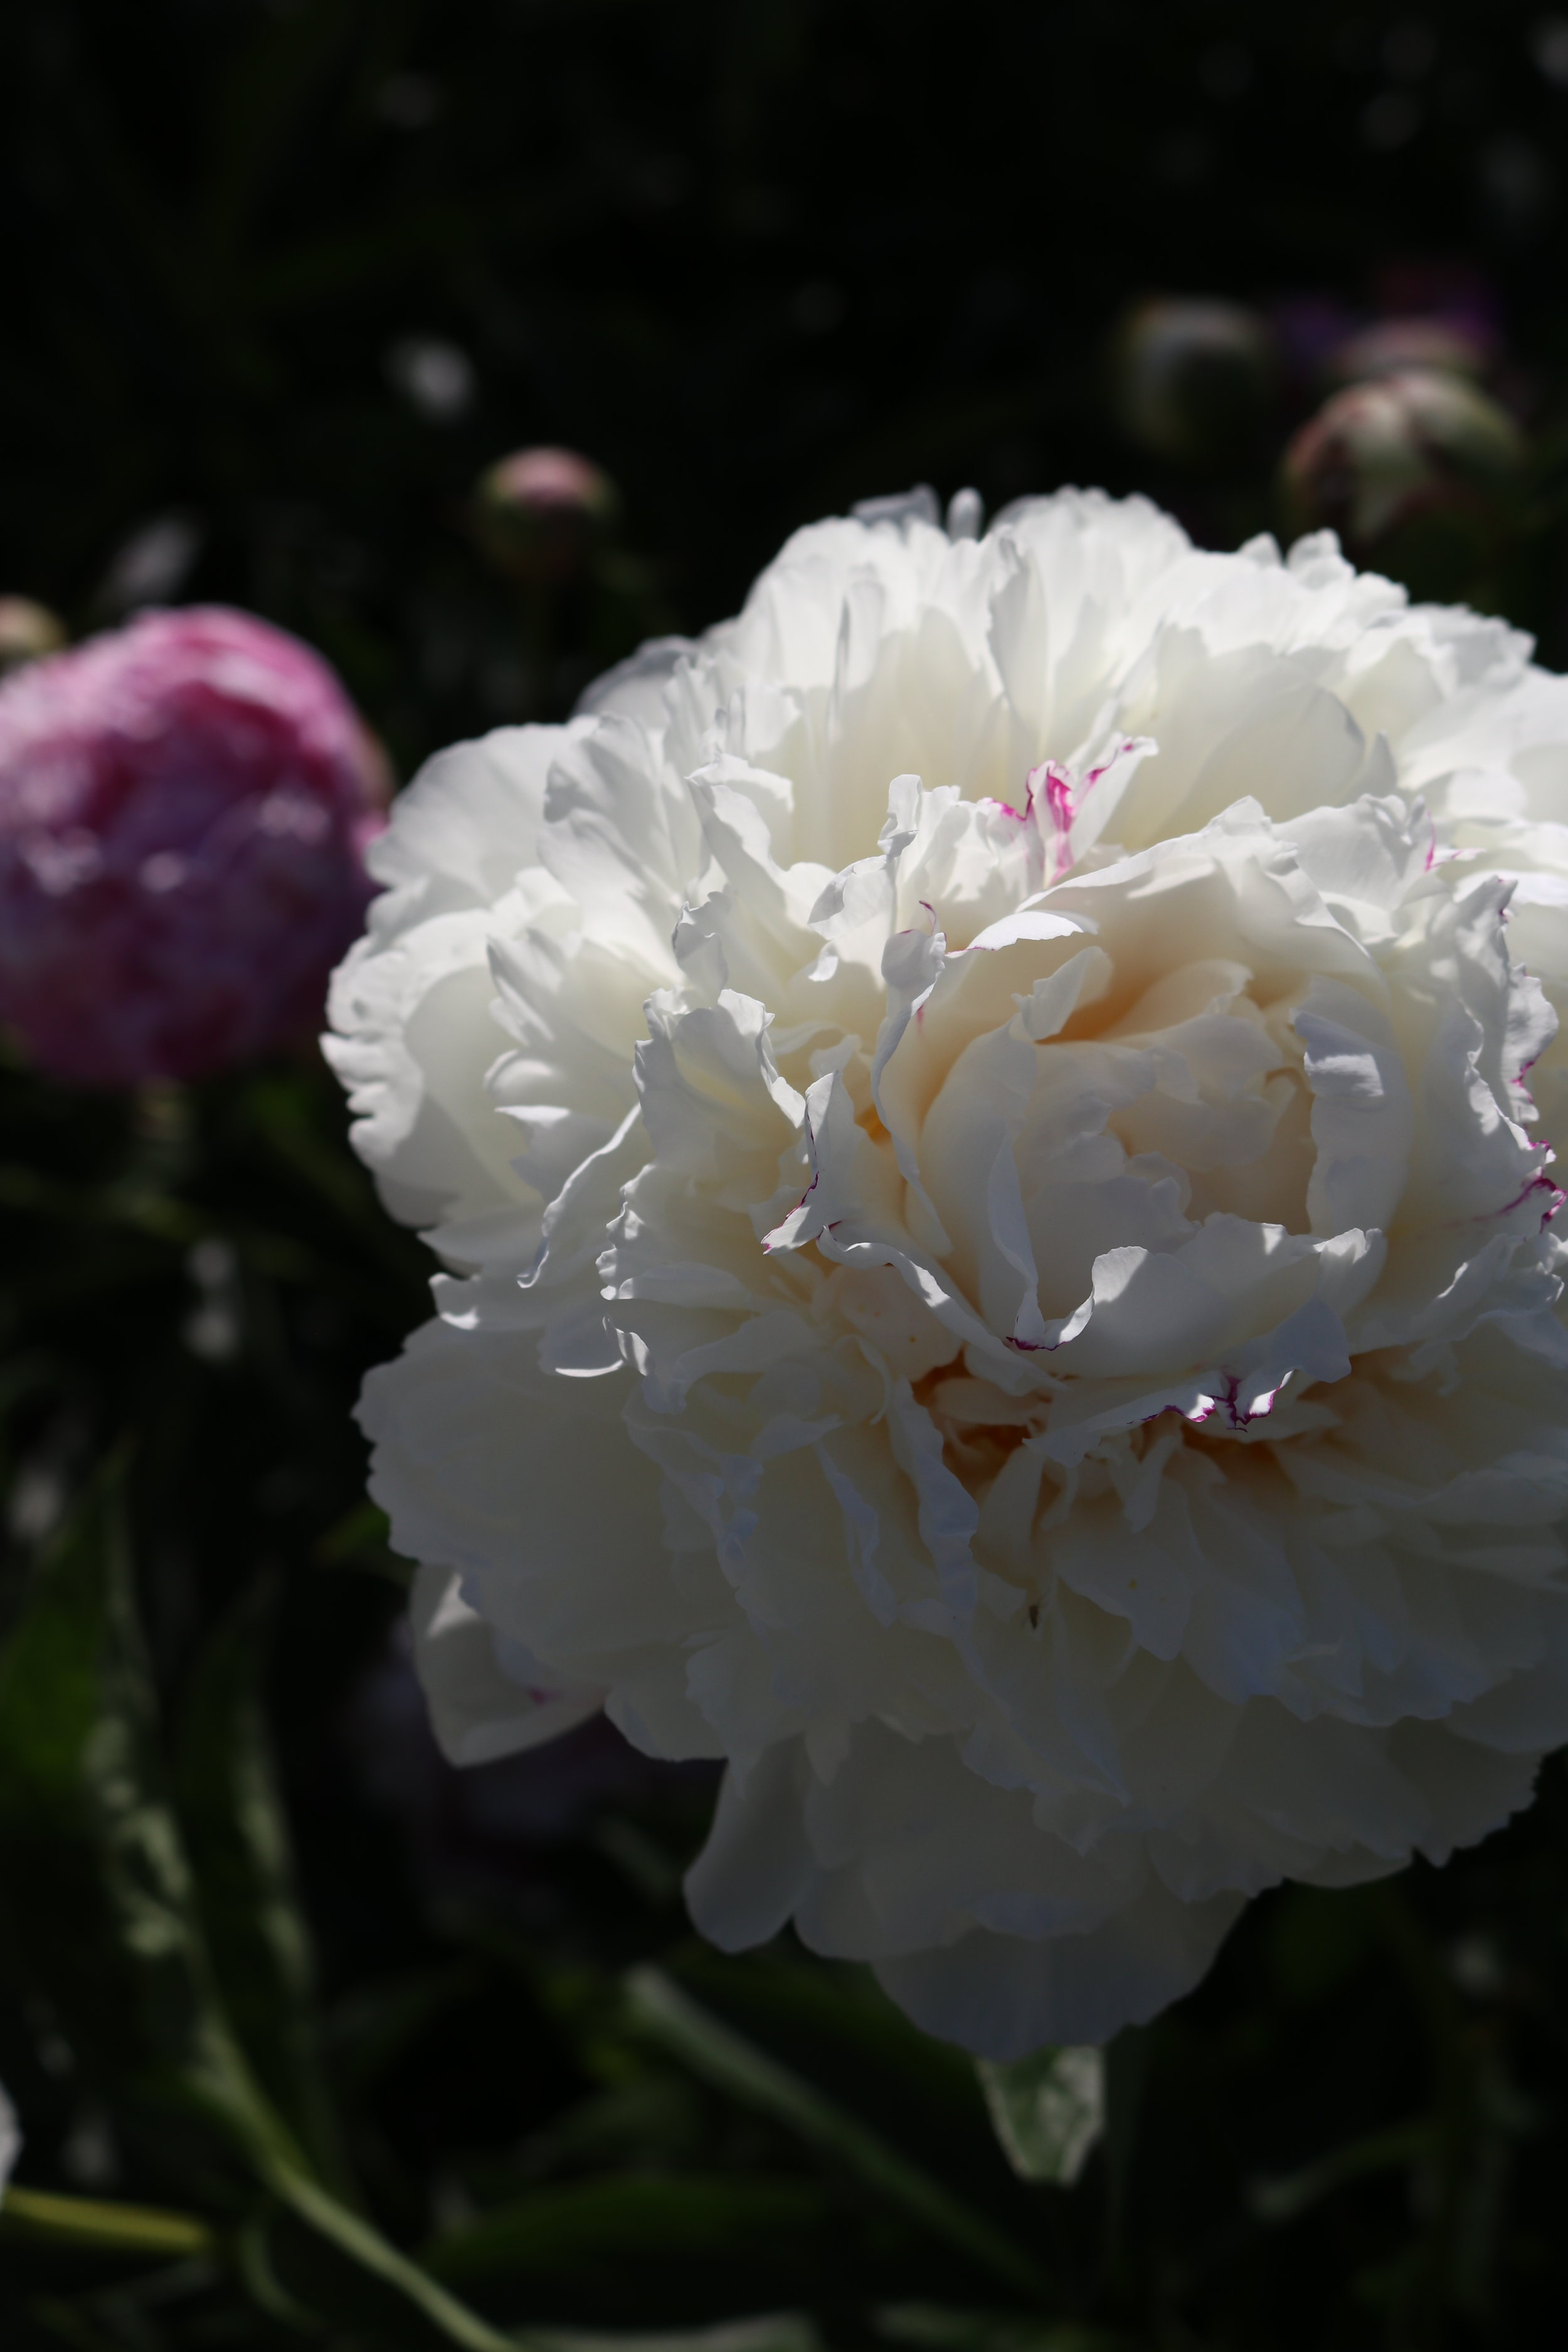 A gorgeous peony outside of capitol building in Bismarck. They don't really grow well in the south so I get excited whenever I see them!